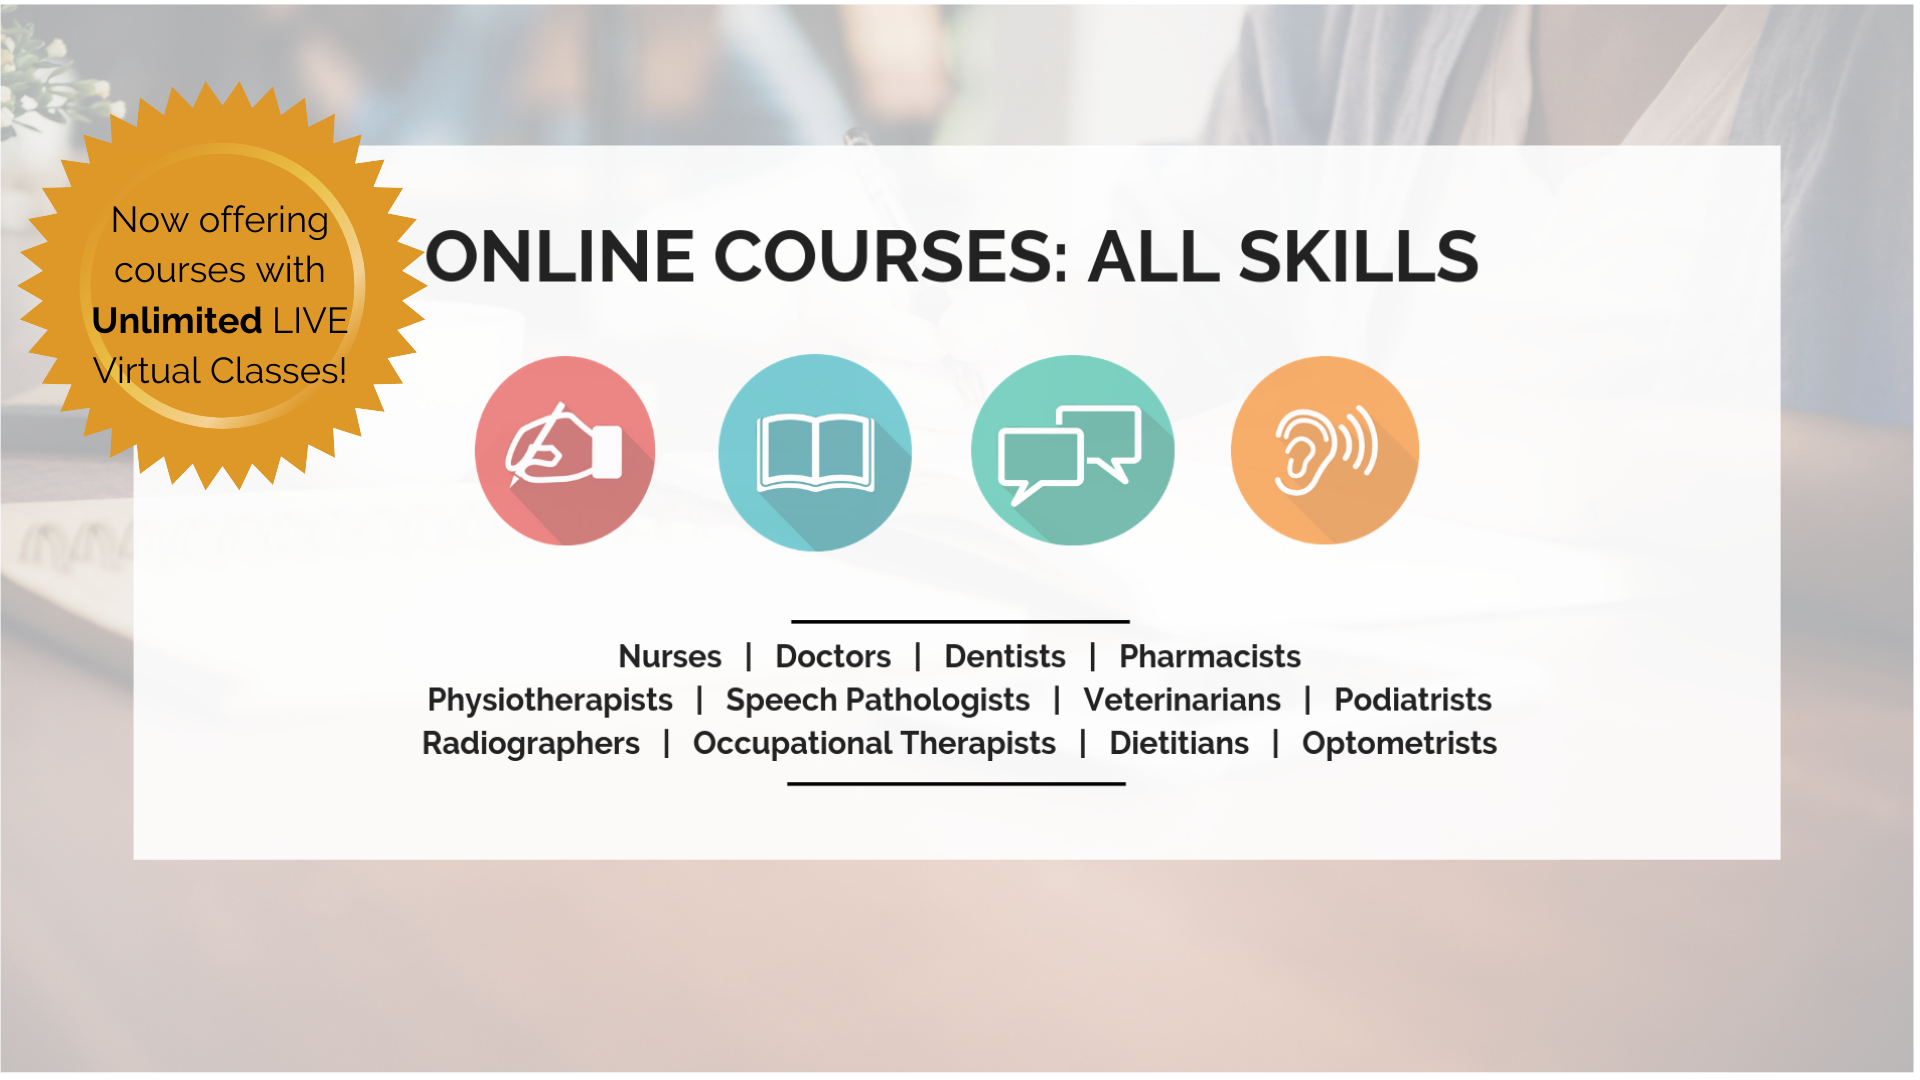 OET Online: Online Courses: All Skills